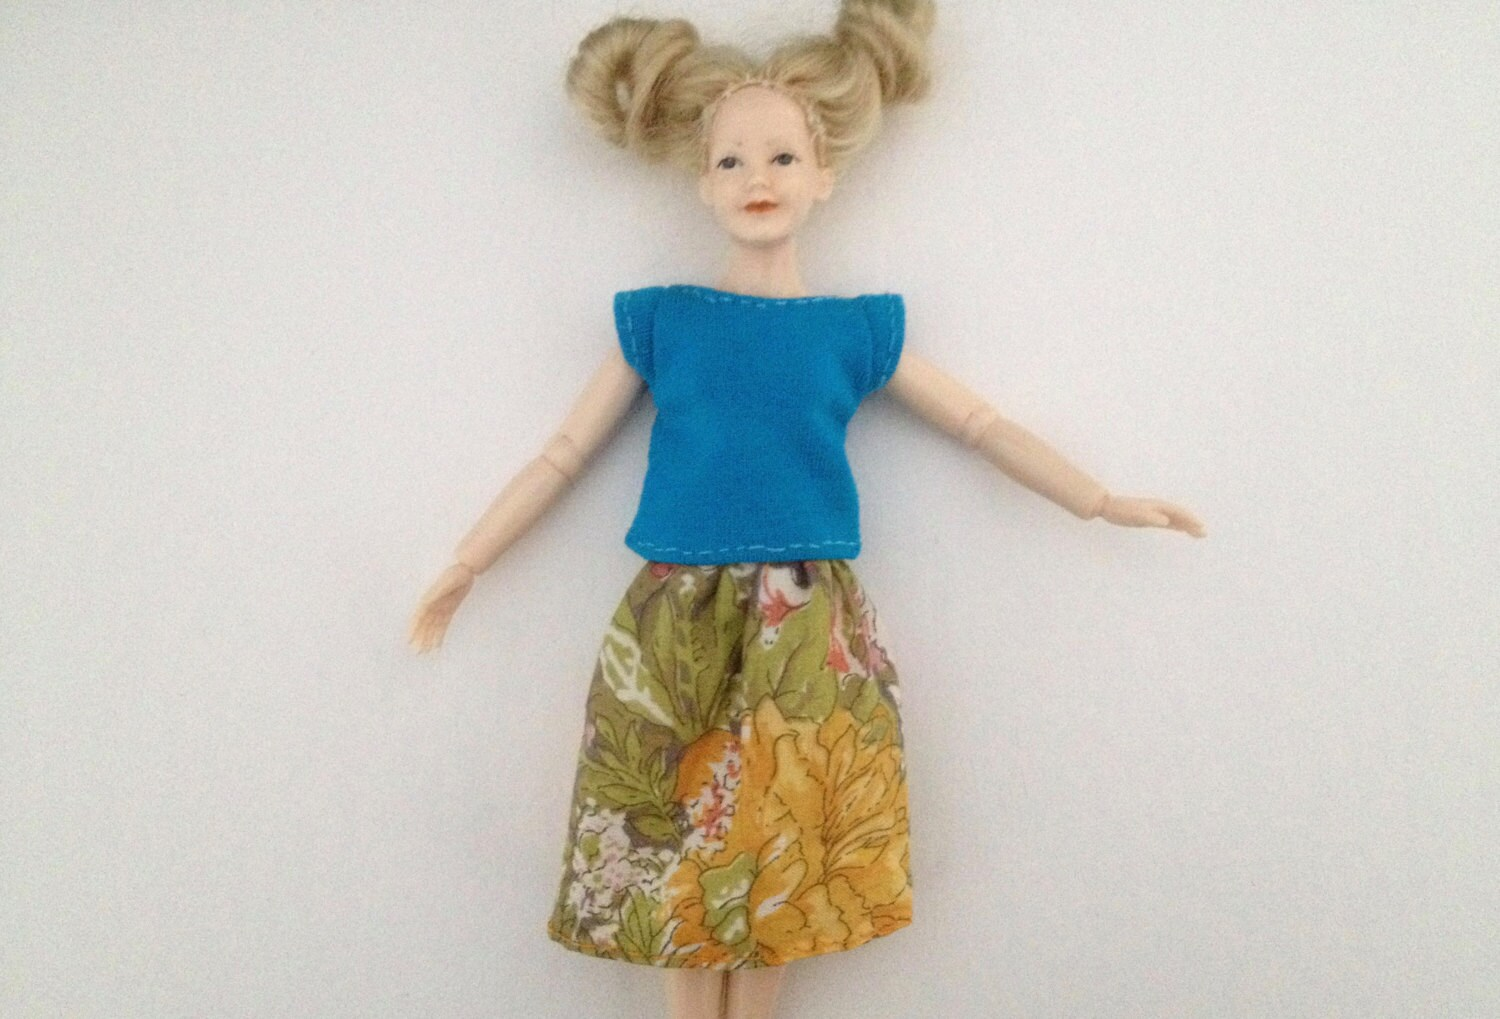 112 scale womens teal top with floral long skirt for Heidi dolls by Jings Creations